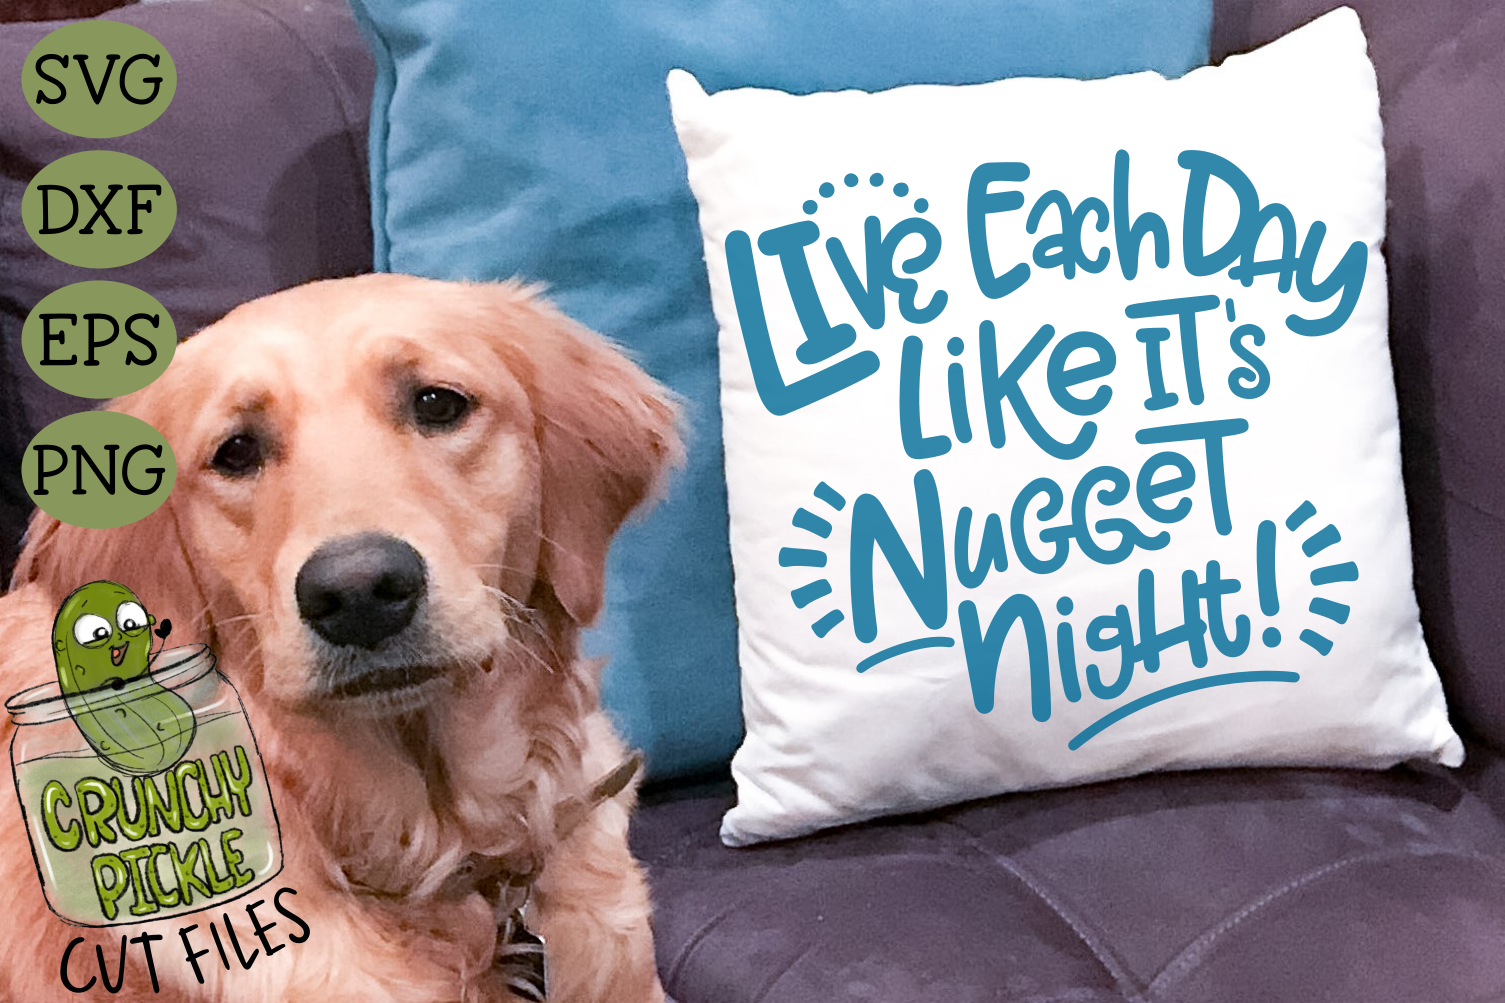 Live Each Day Like It's Nugget Night SVG Cut File example image 4